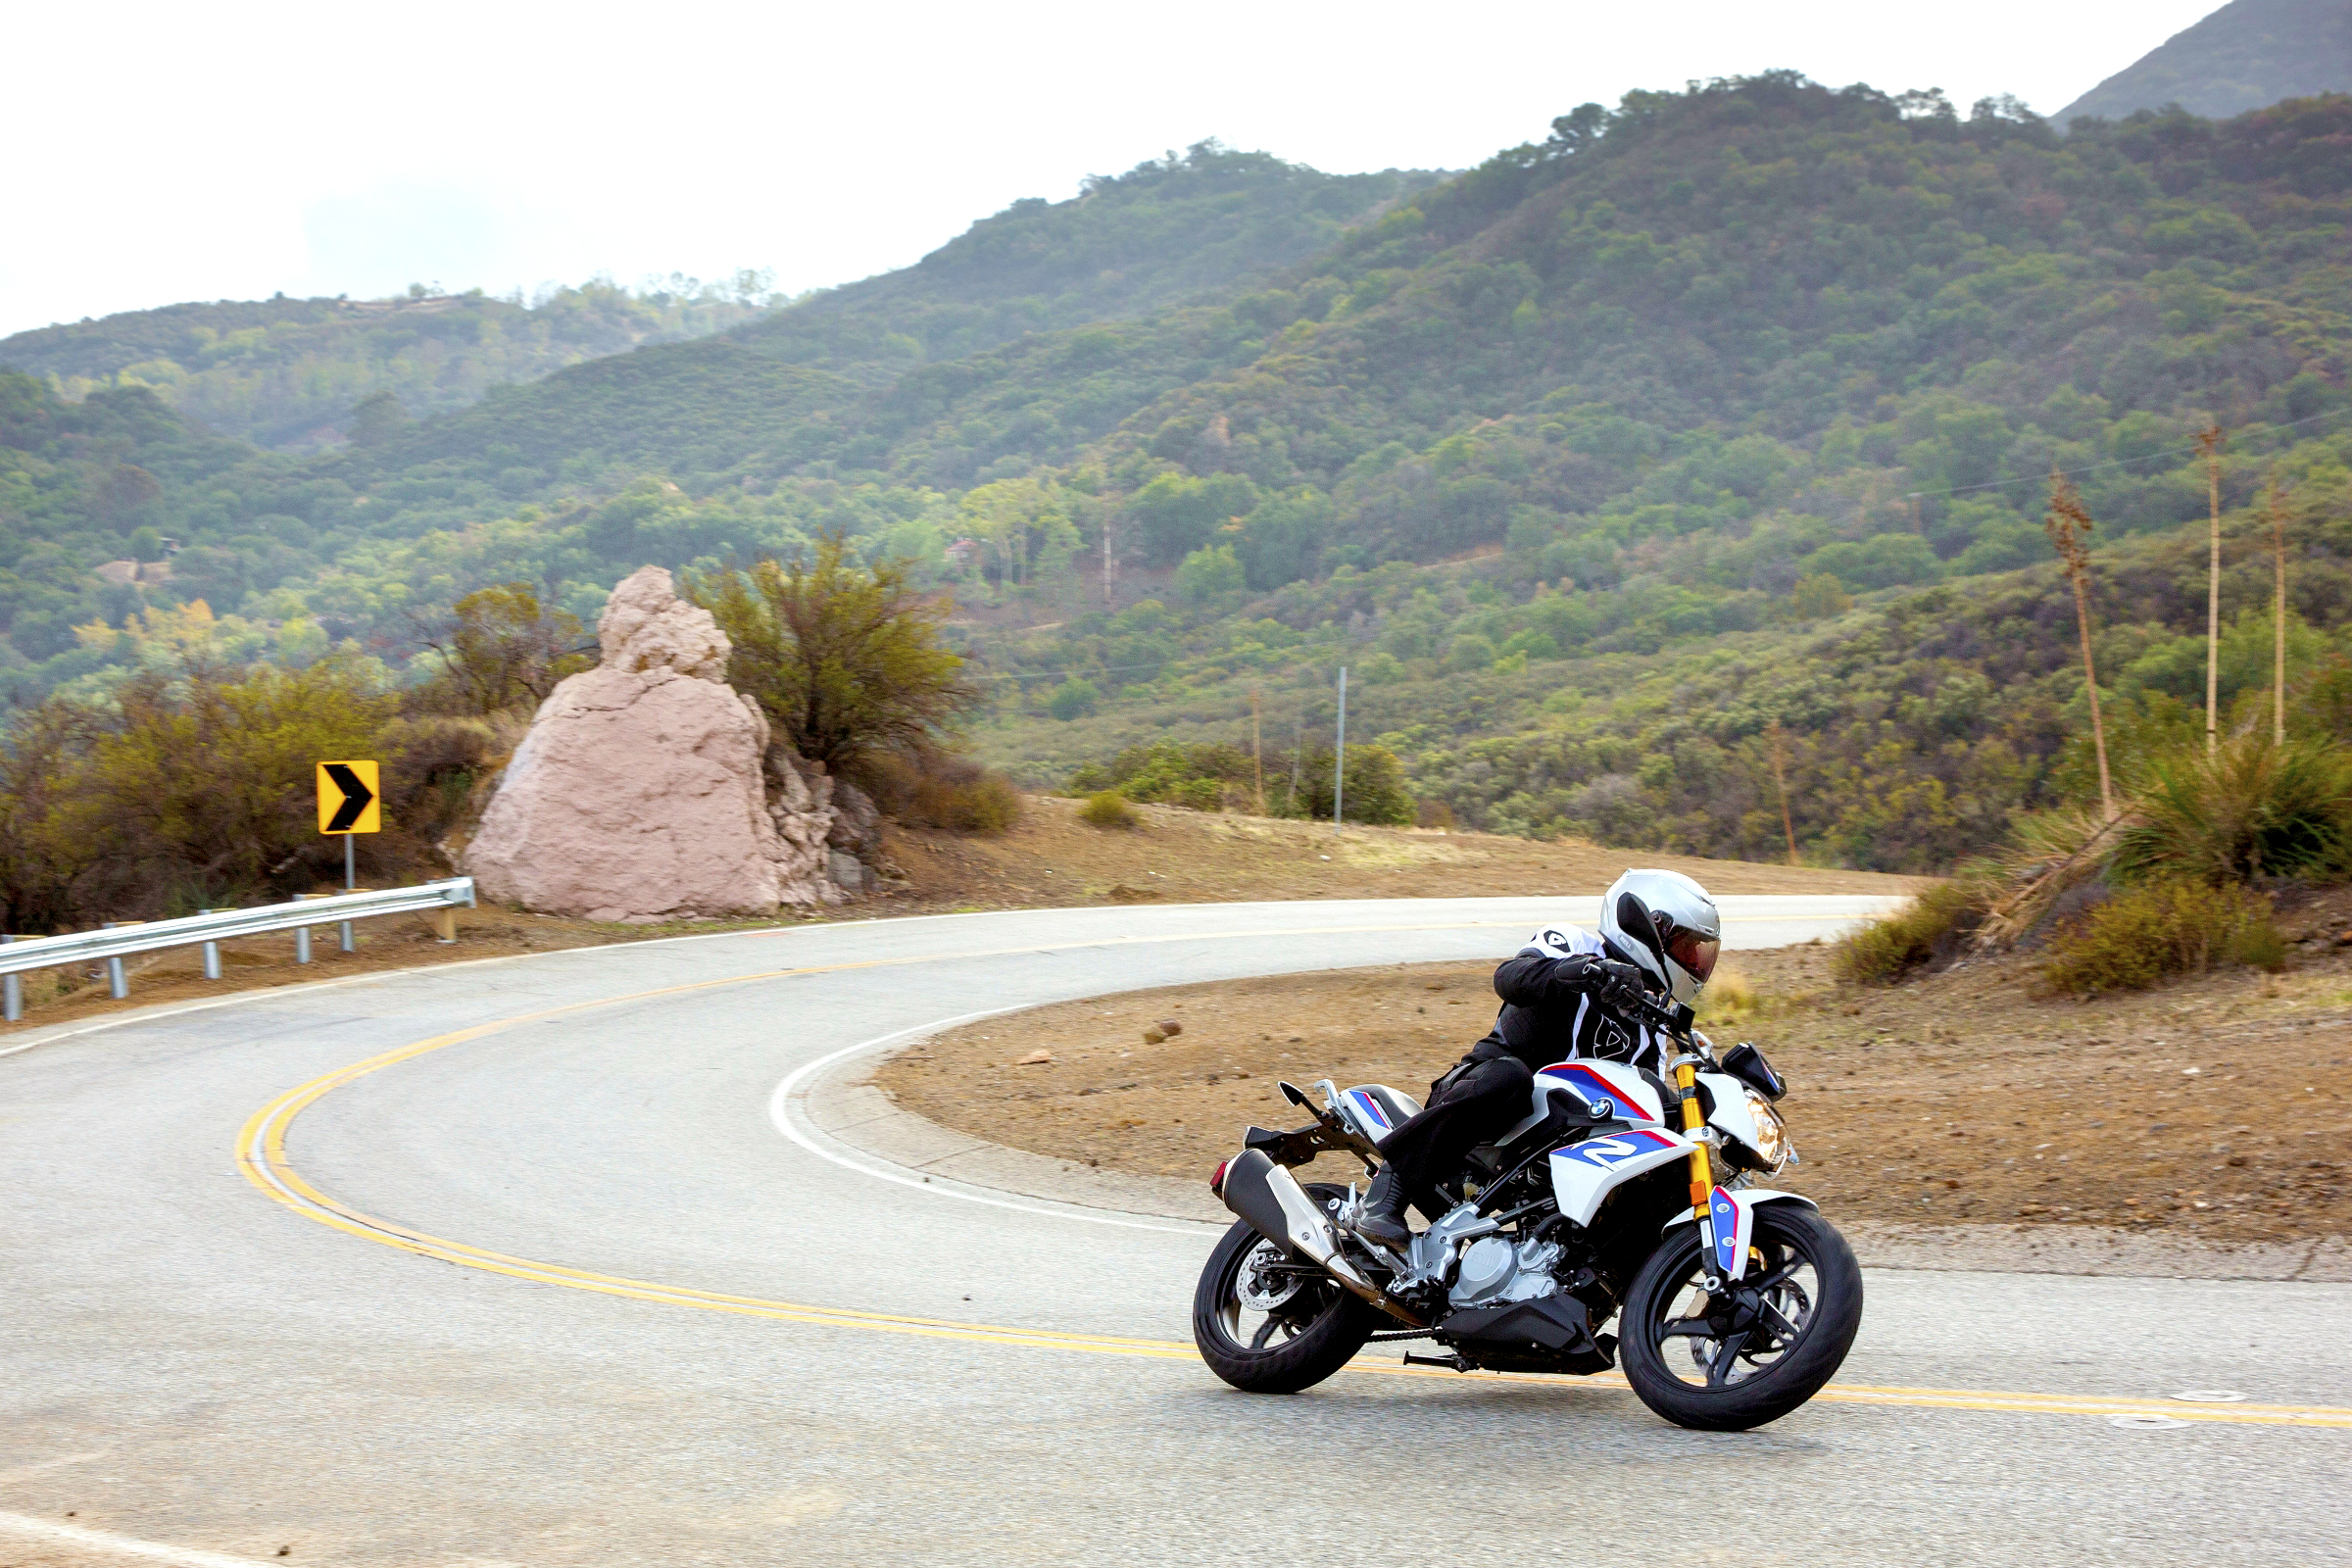 riding the BMW G 310 R